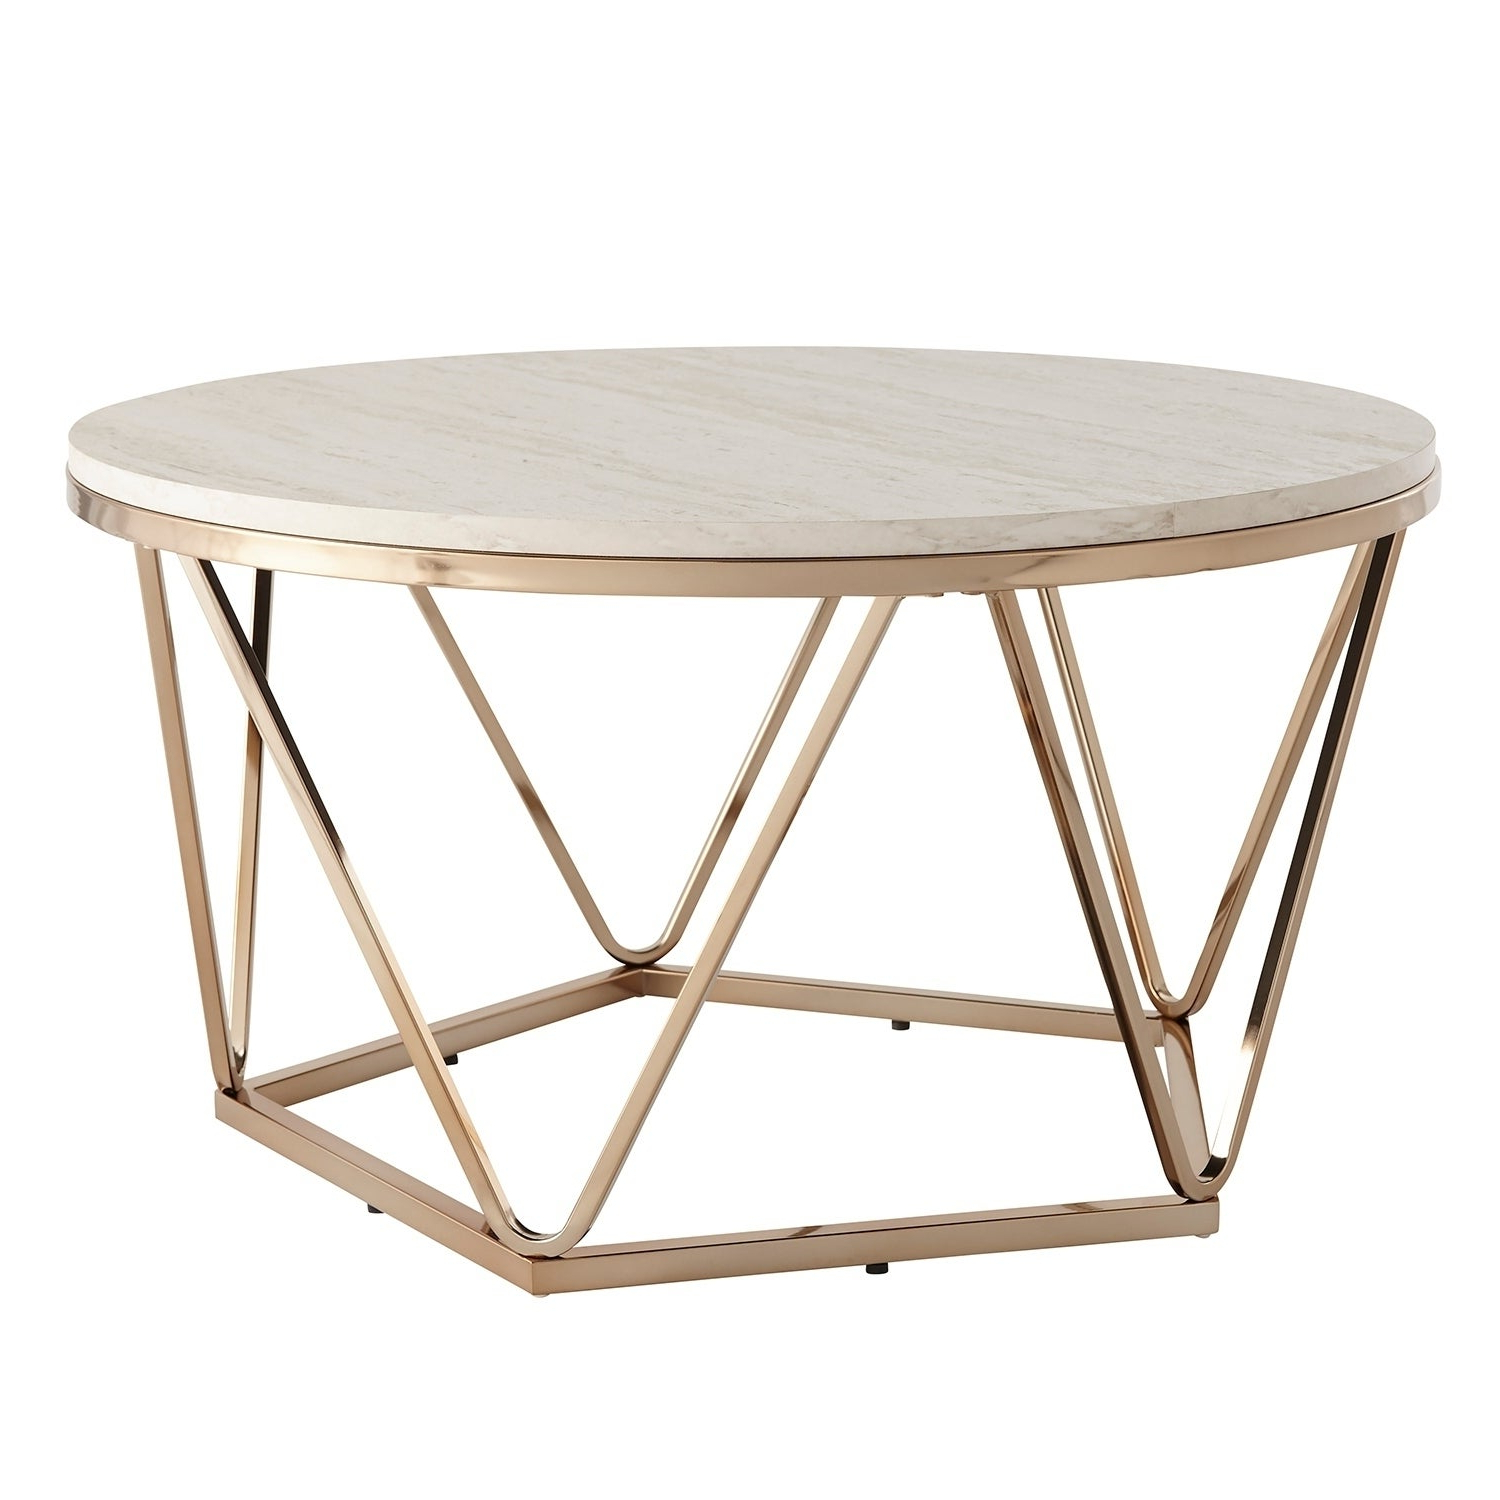 Silver Orchid Henderson Faux Stone Goldtone Round Coffee Table For Trendy Silver Orchid Henderson Faux Stone Round End Tables (View 7 of 20)